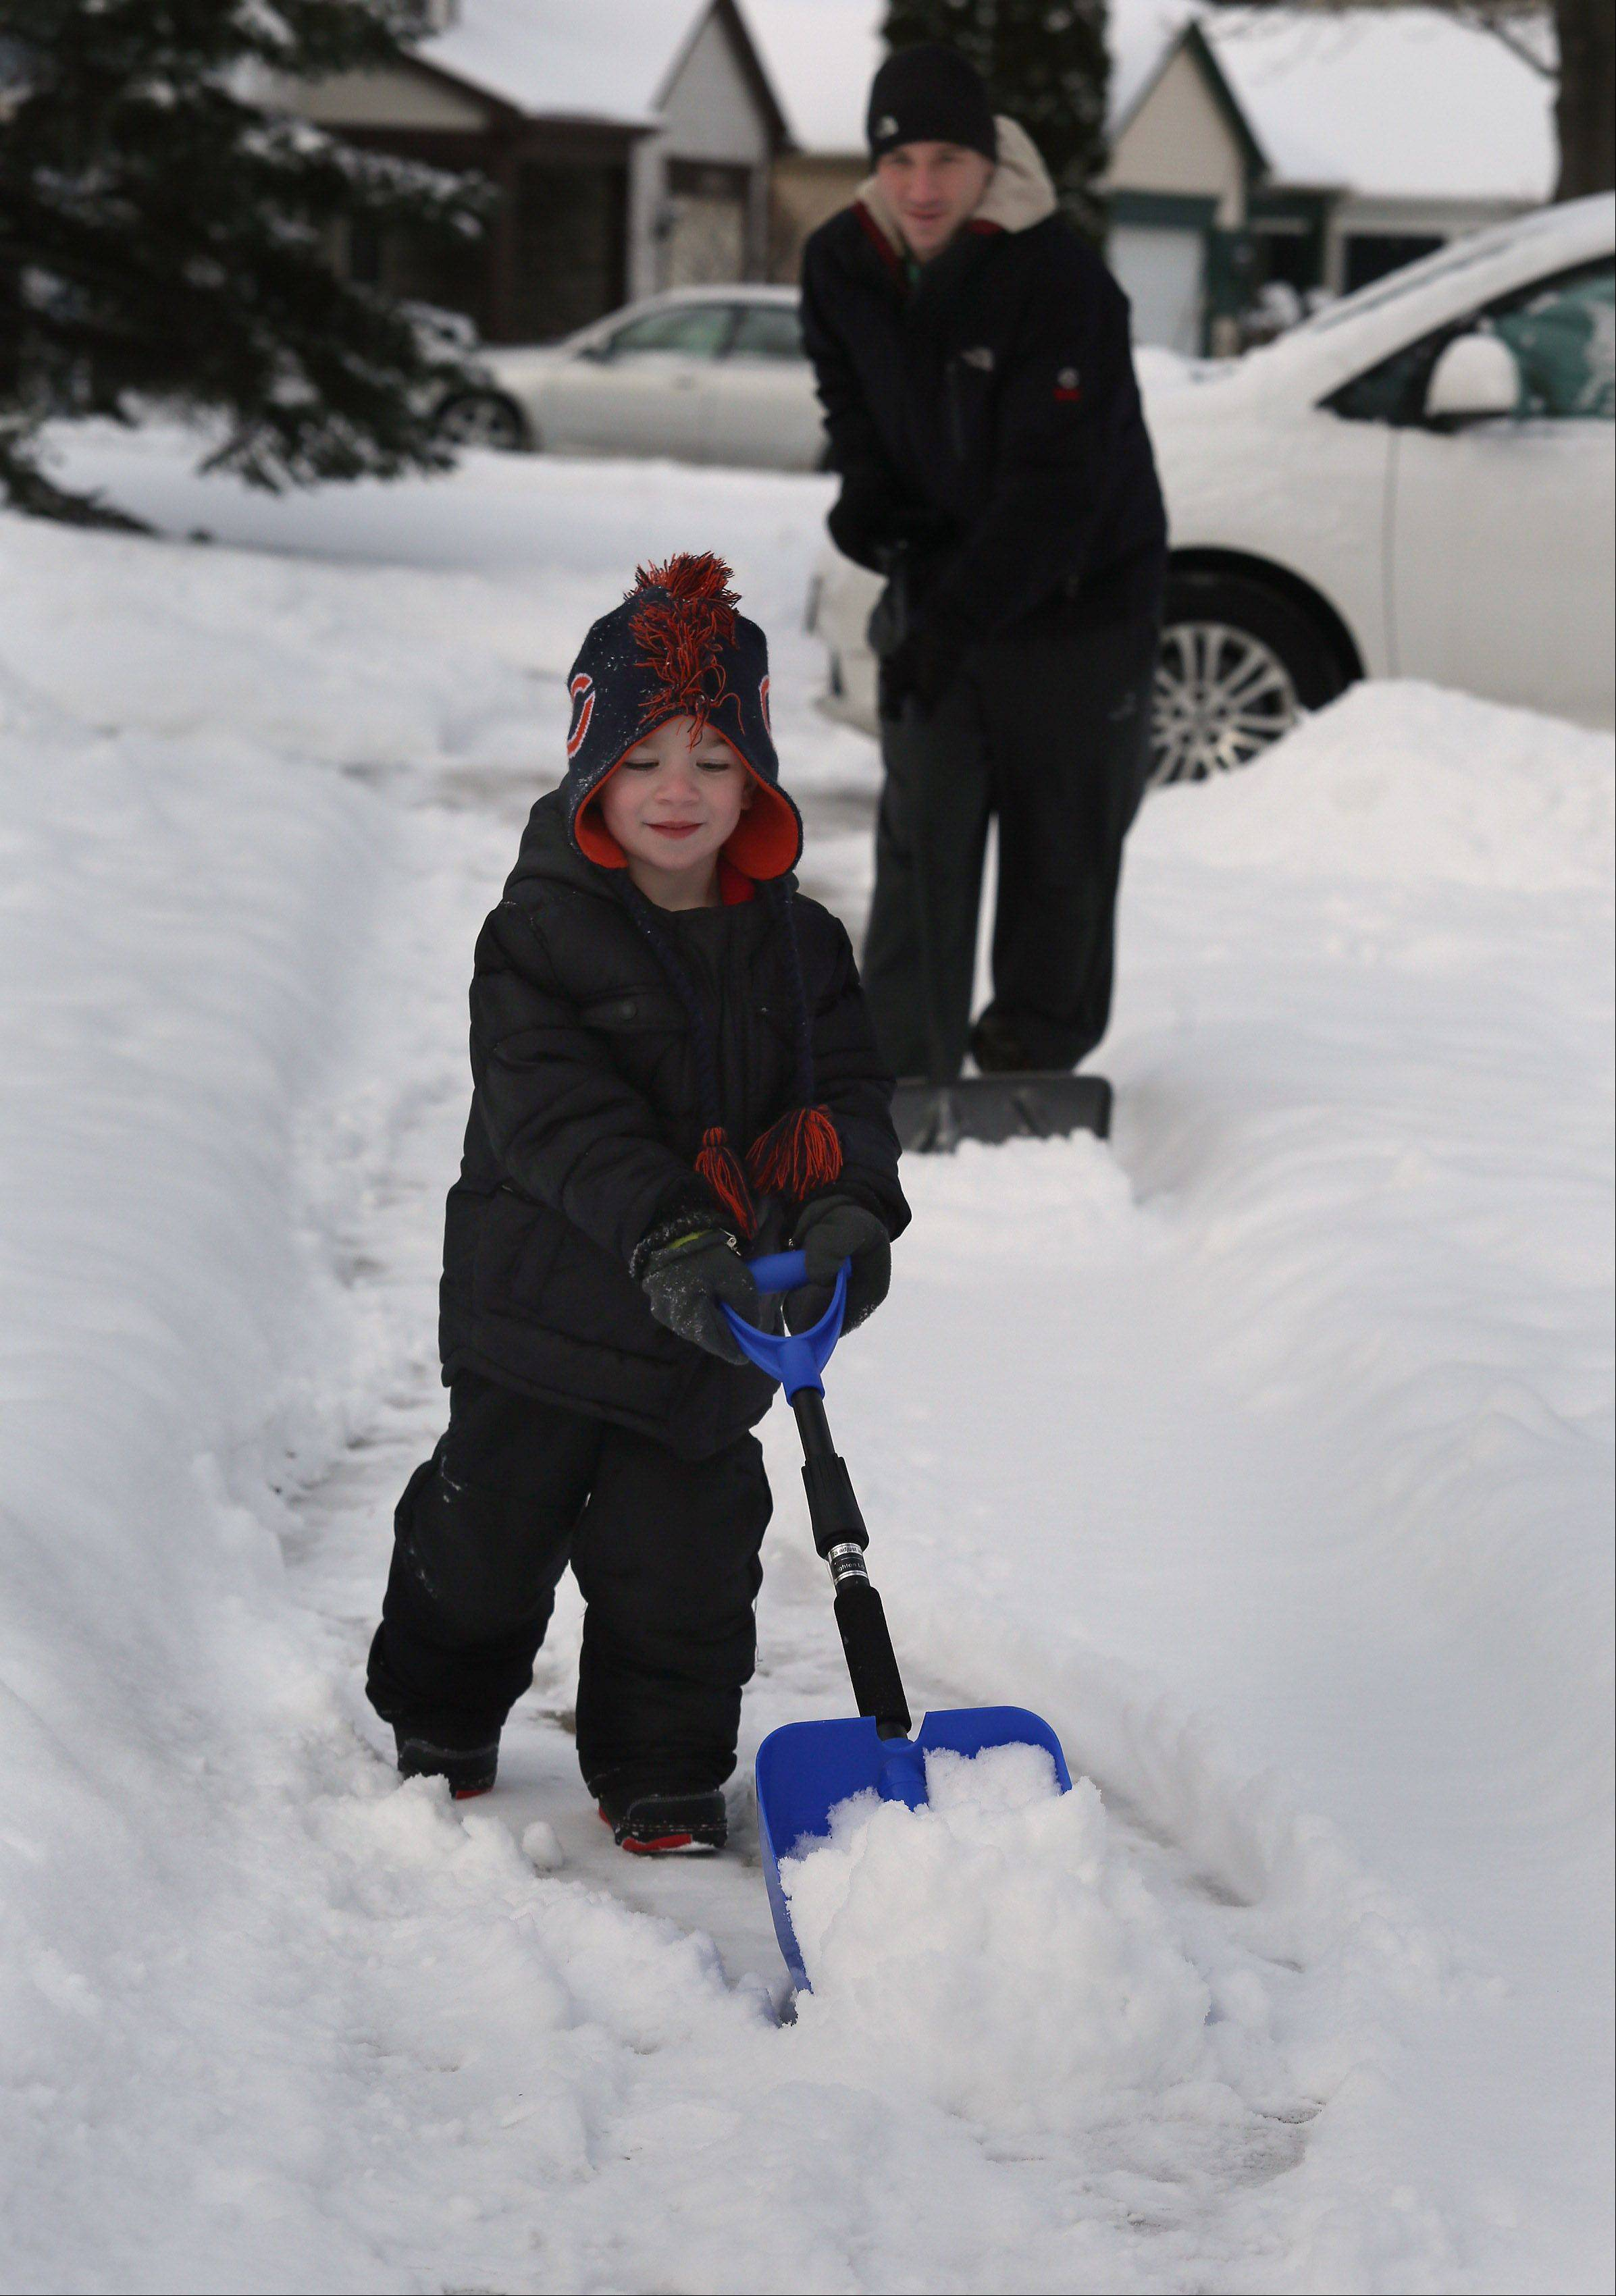 Three-year-old Mason Freed and his dad, Jordan, of Mundelein shovel the sidewalk after overnight snows blanketed the area. Mason was happy to help after getting a new Bears hat and a small-size snow shovel recently.